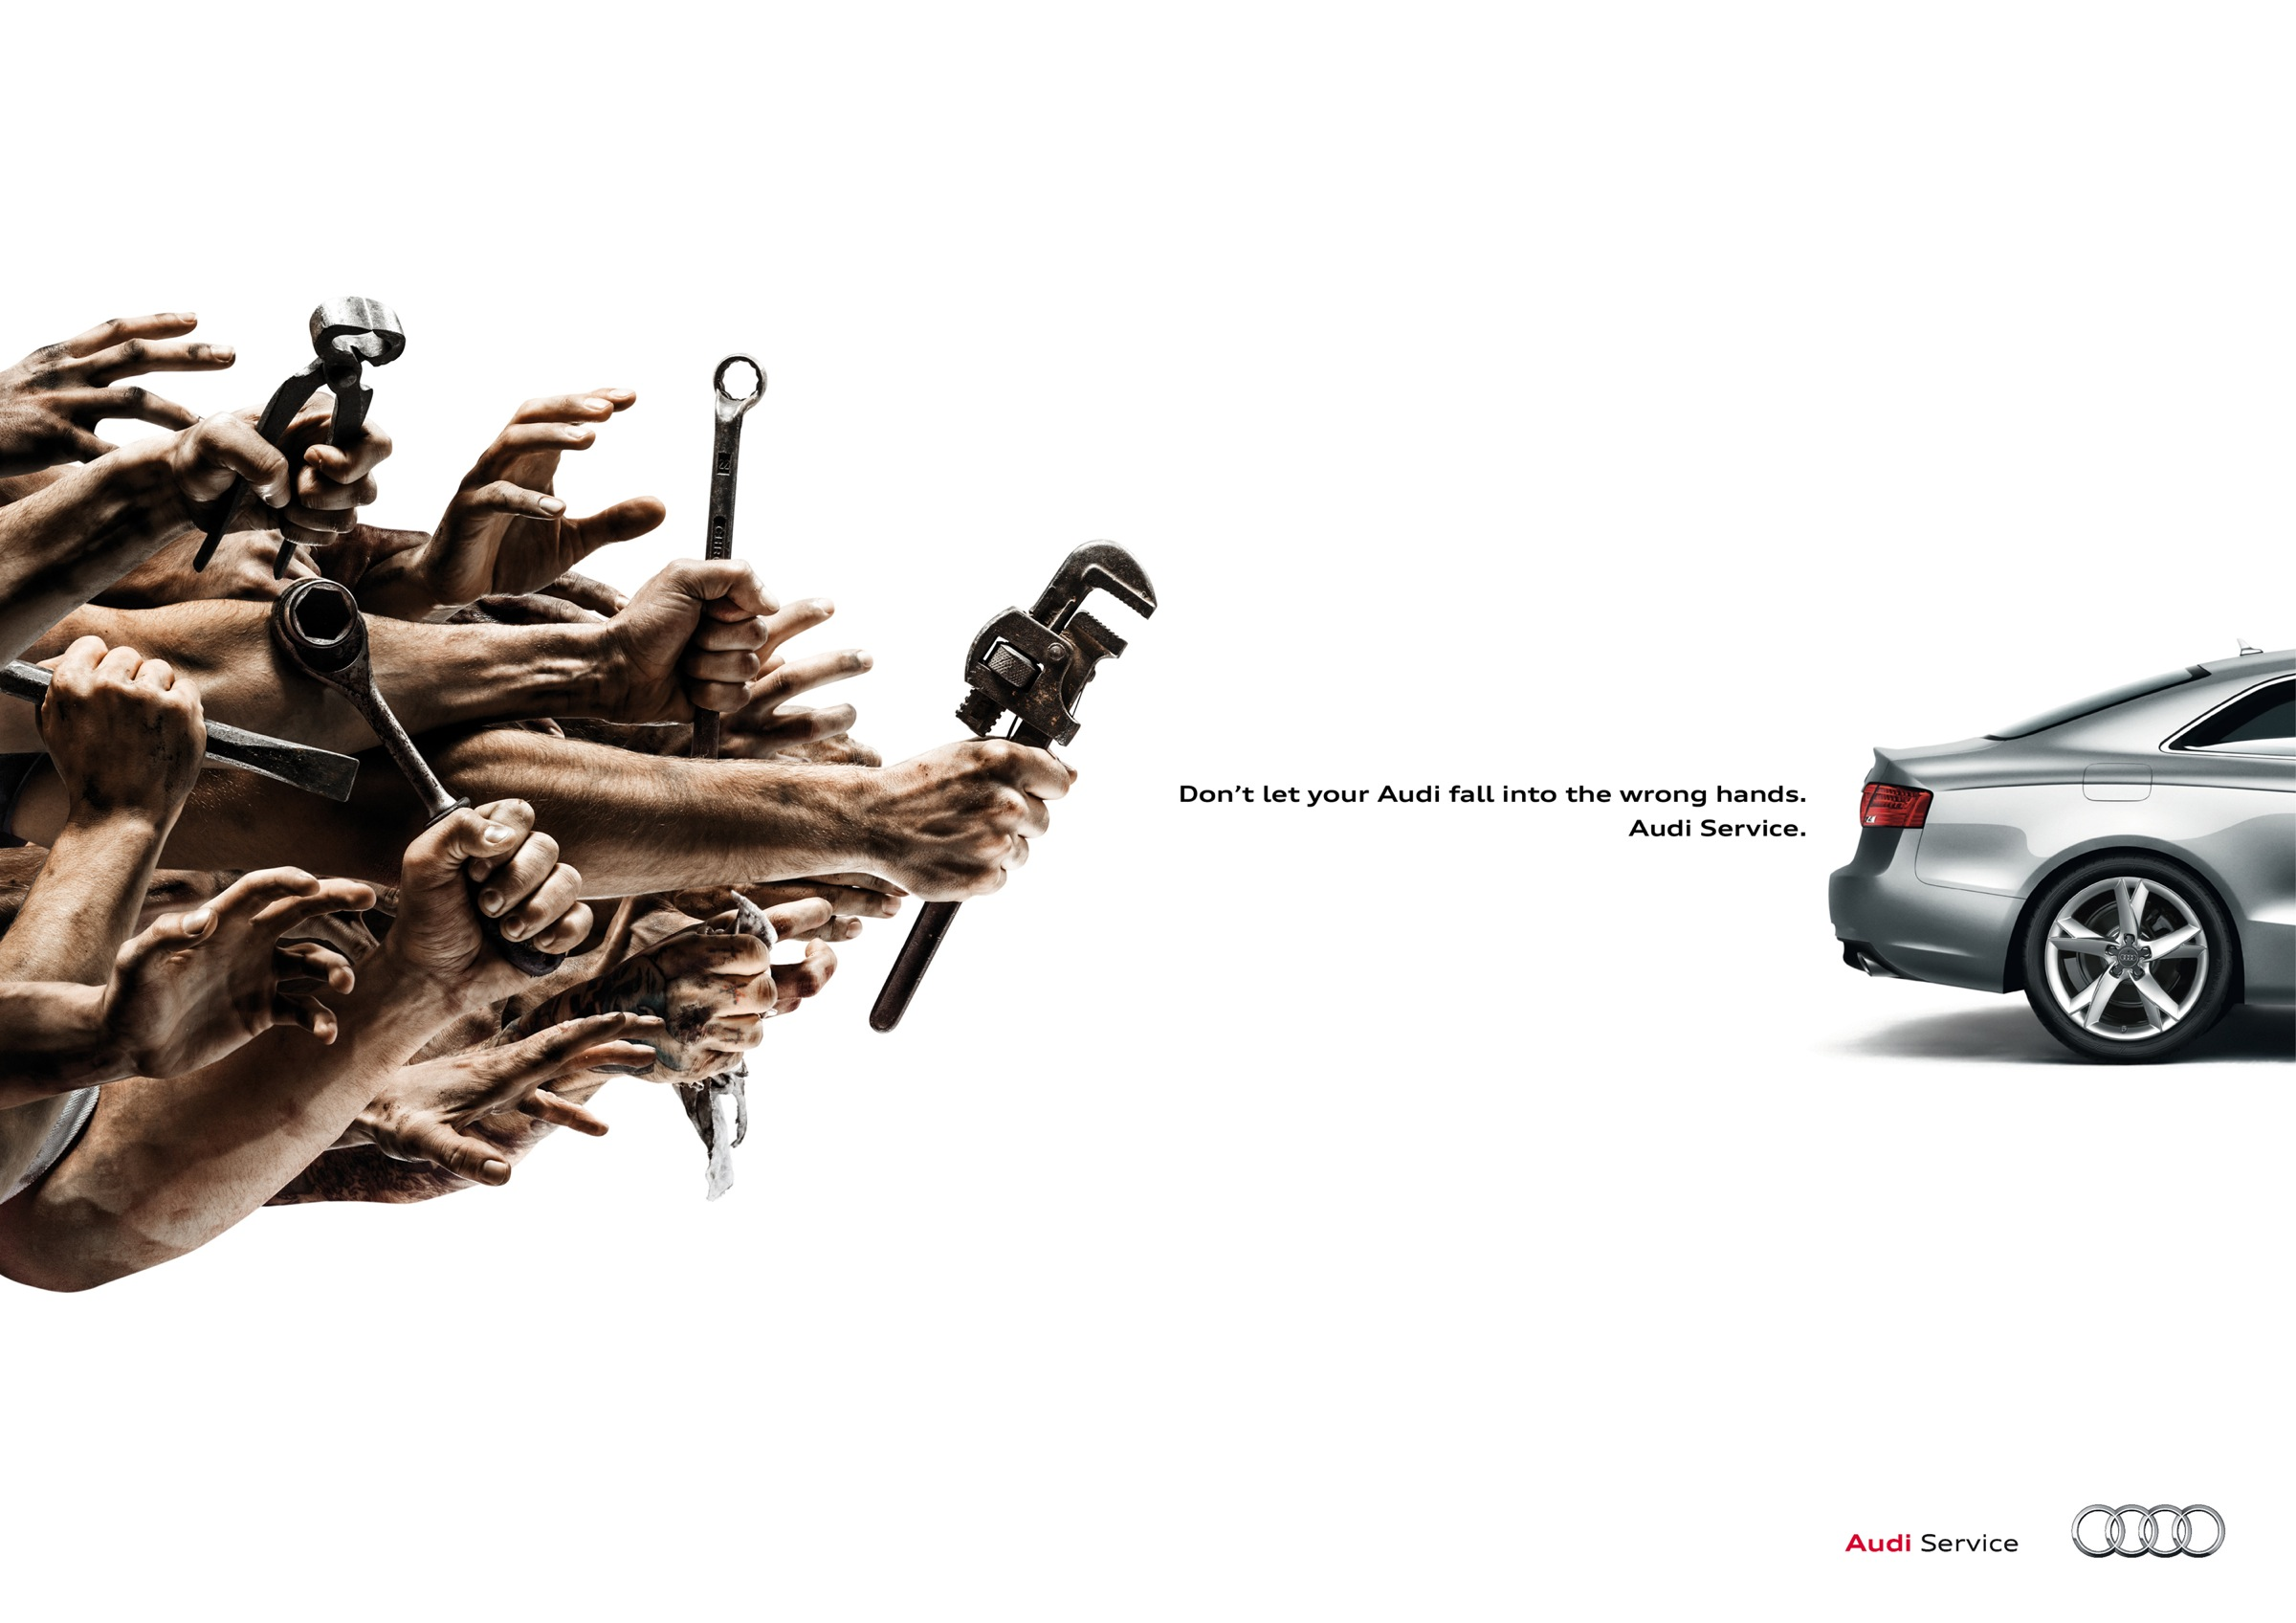 audi-dont-let-your-audi-fall-into-the-wrong-hands-print-369364-adeevee